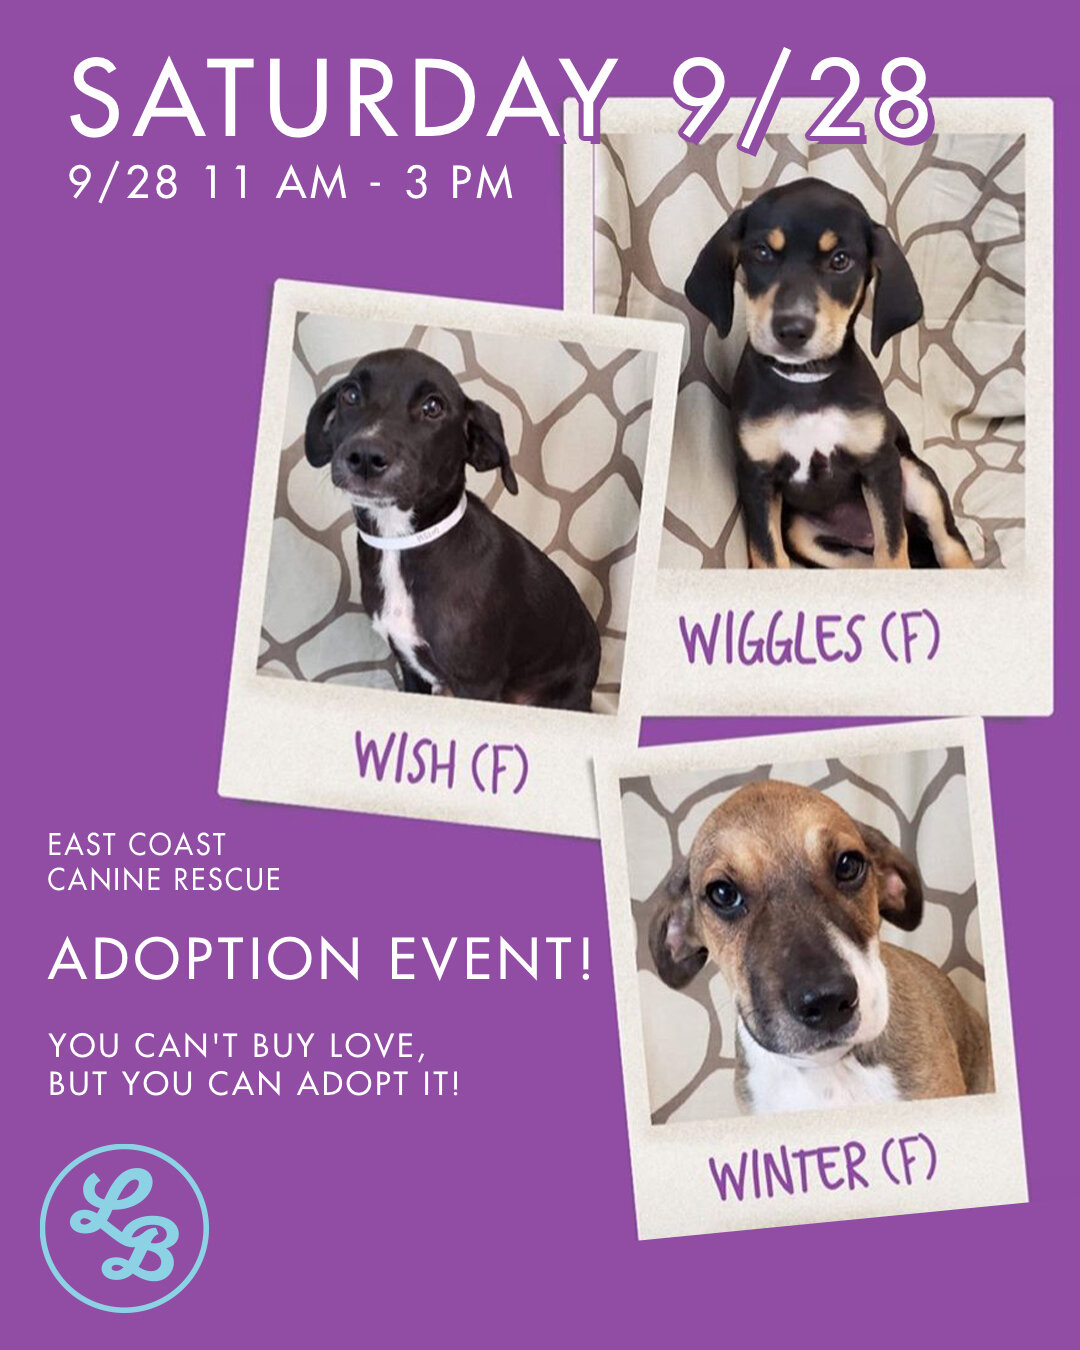 - Today I'm really psyched to share with you that we are hosting an Adoption Event on September, 28, 2019 at our store in downtown Montclair from 10:00 am to 3:00 pm. My new friends from East Coast Canine Rescue are bringing a bunch of dogs and some cats too who are all looking for forever homes!